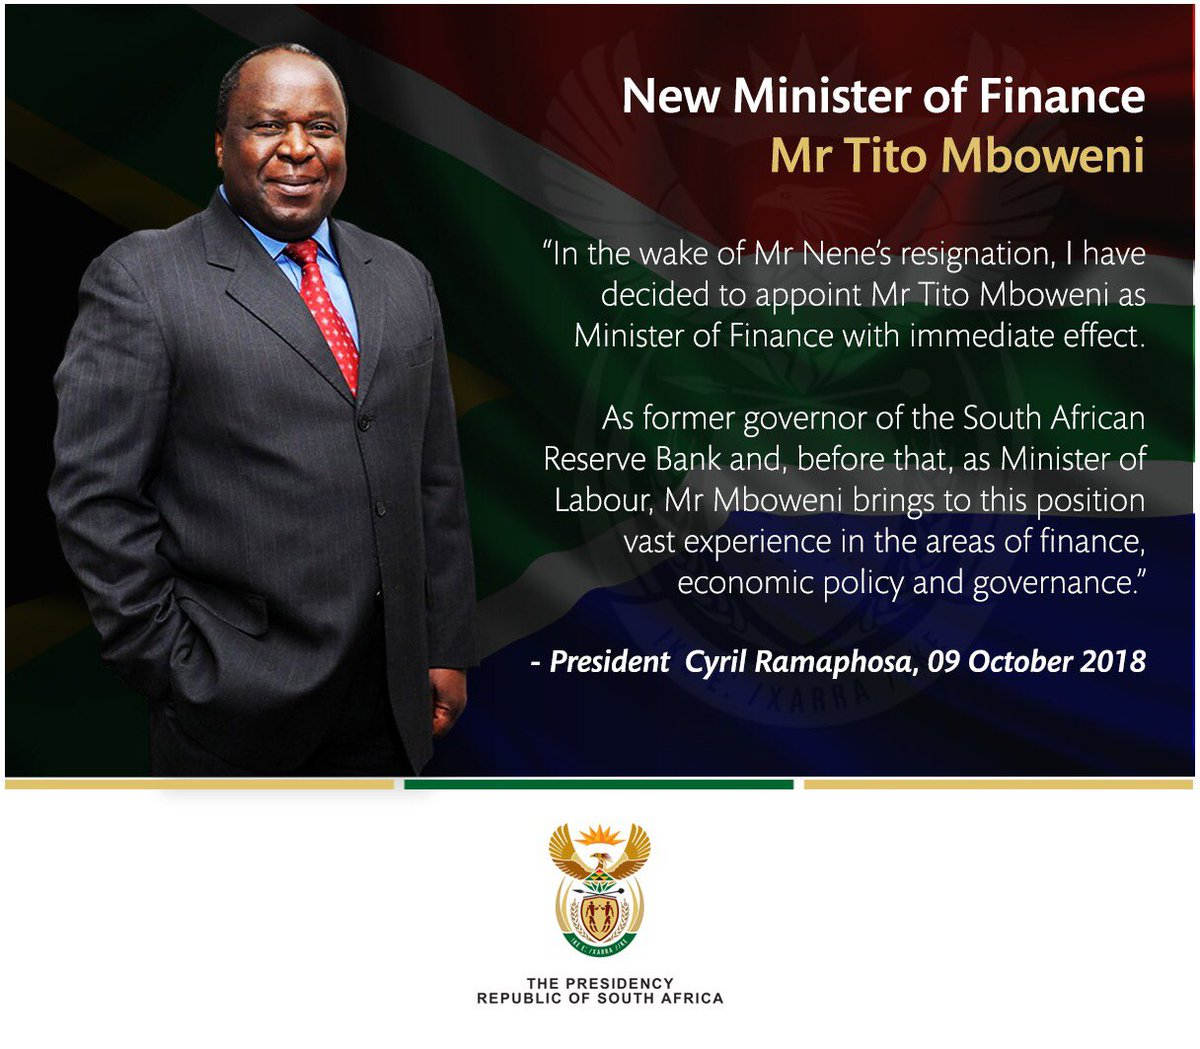 President #Ramaphosa: In the wake of Mr Nene's resignation, I have decided to appoint Mr Tito Mboweni as Minister of Finance with immediate effect.